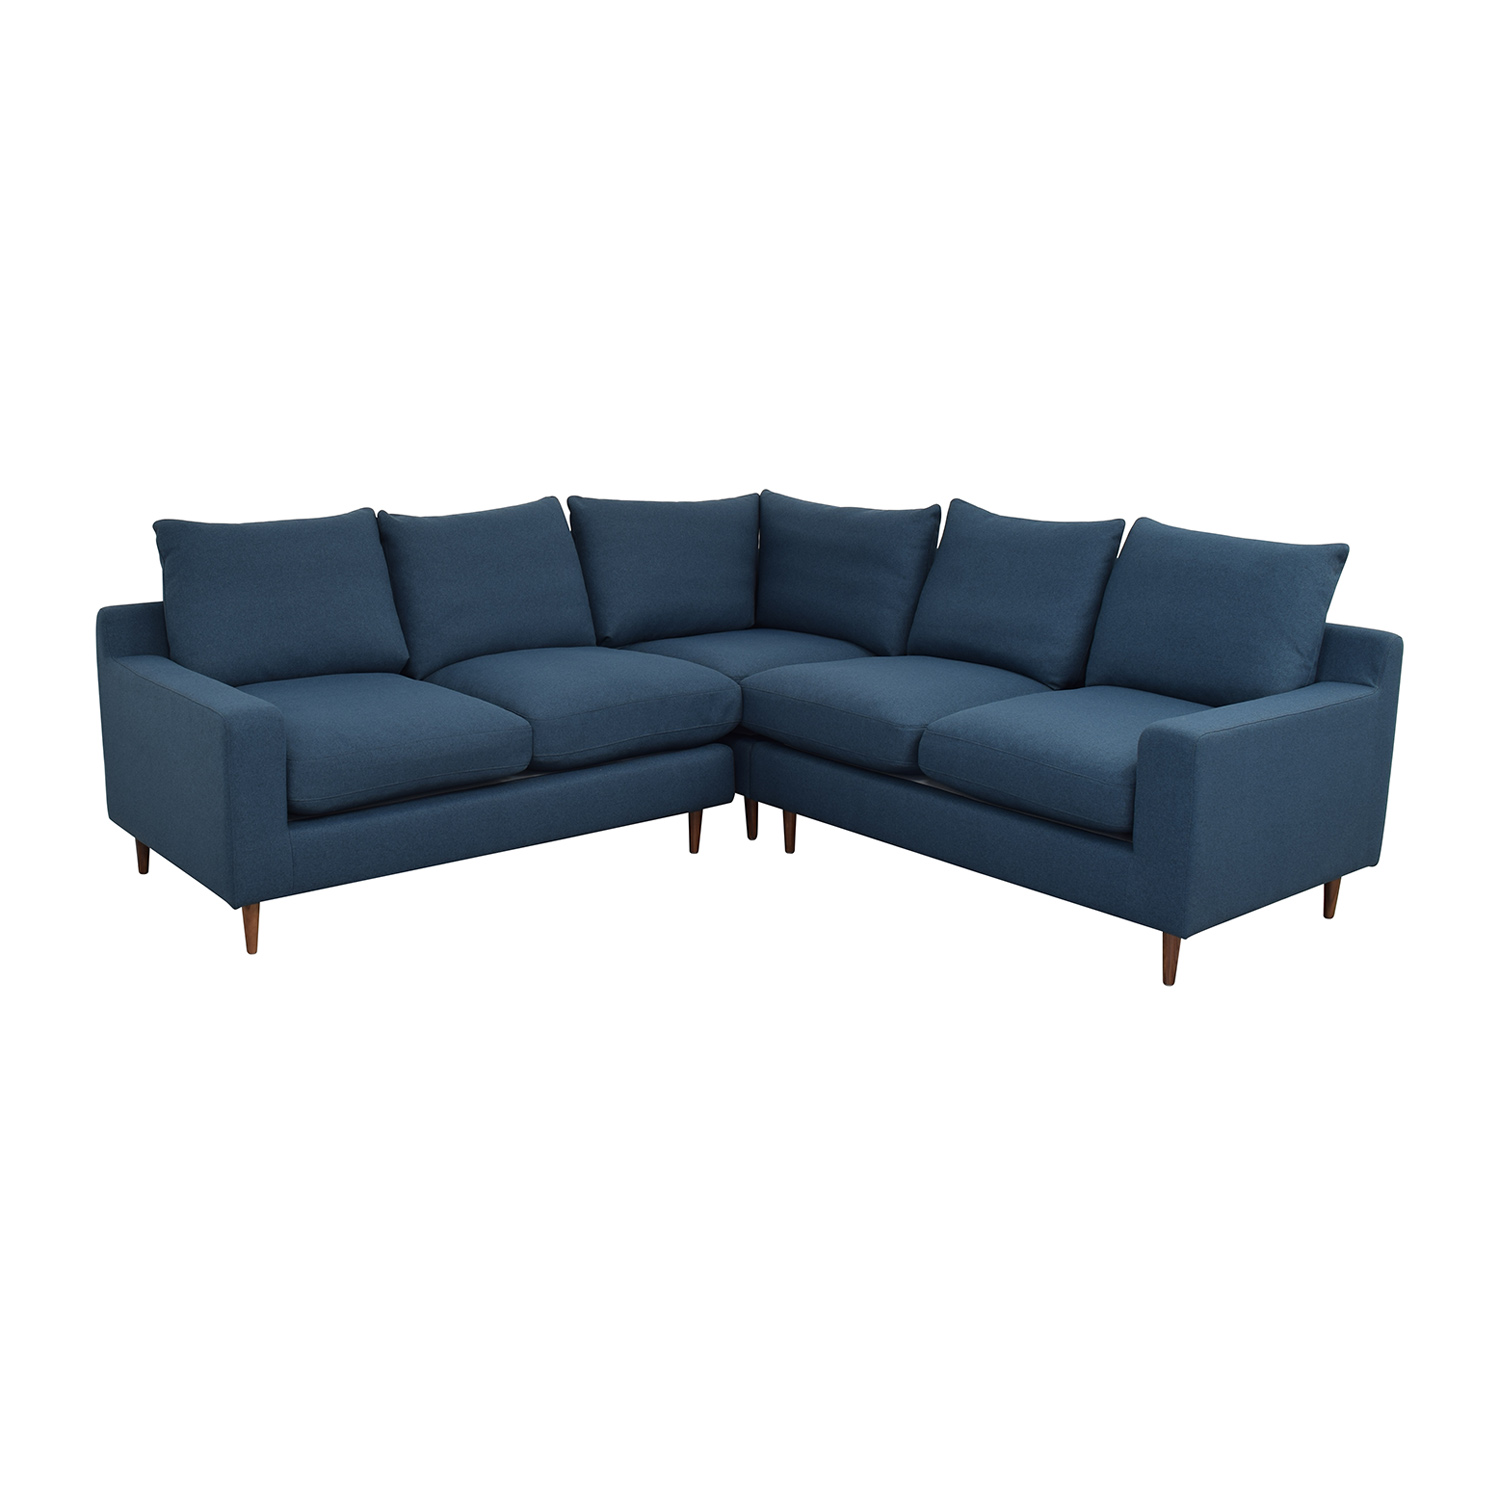 Interior Define Sloan Blue L-Shaped Sectional